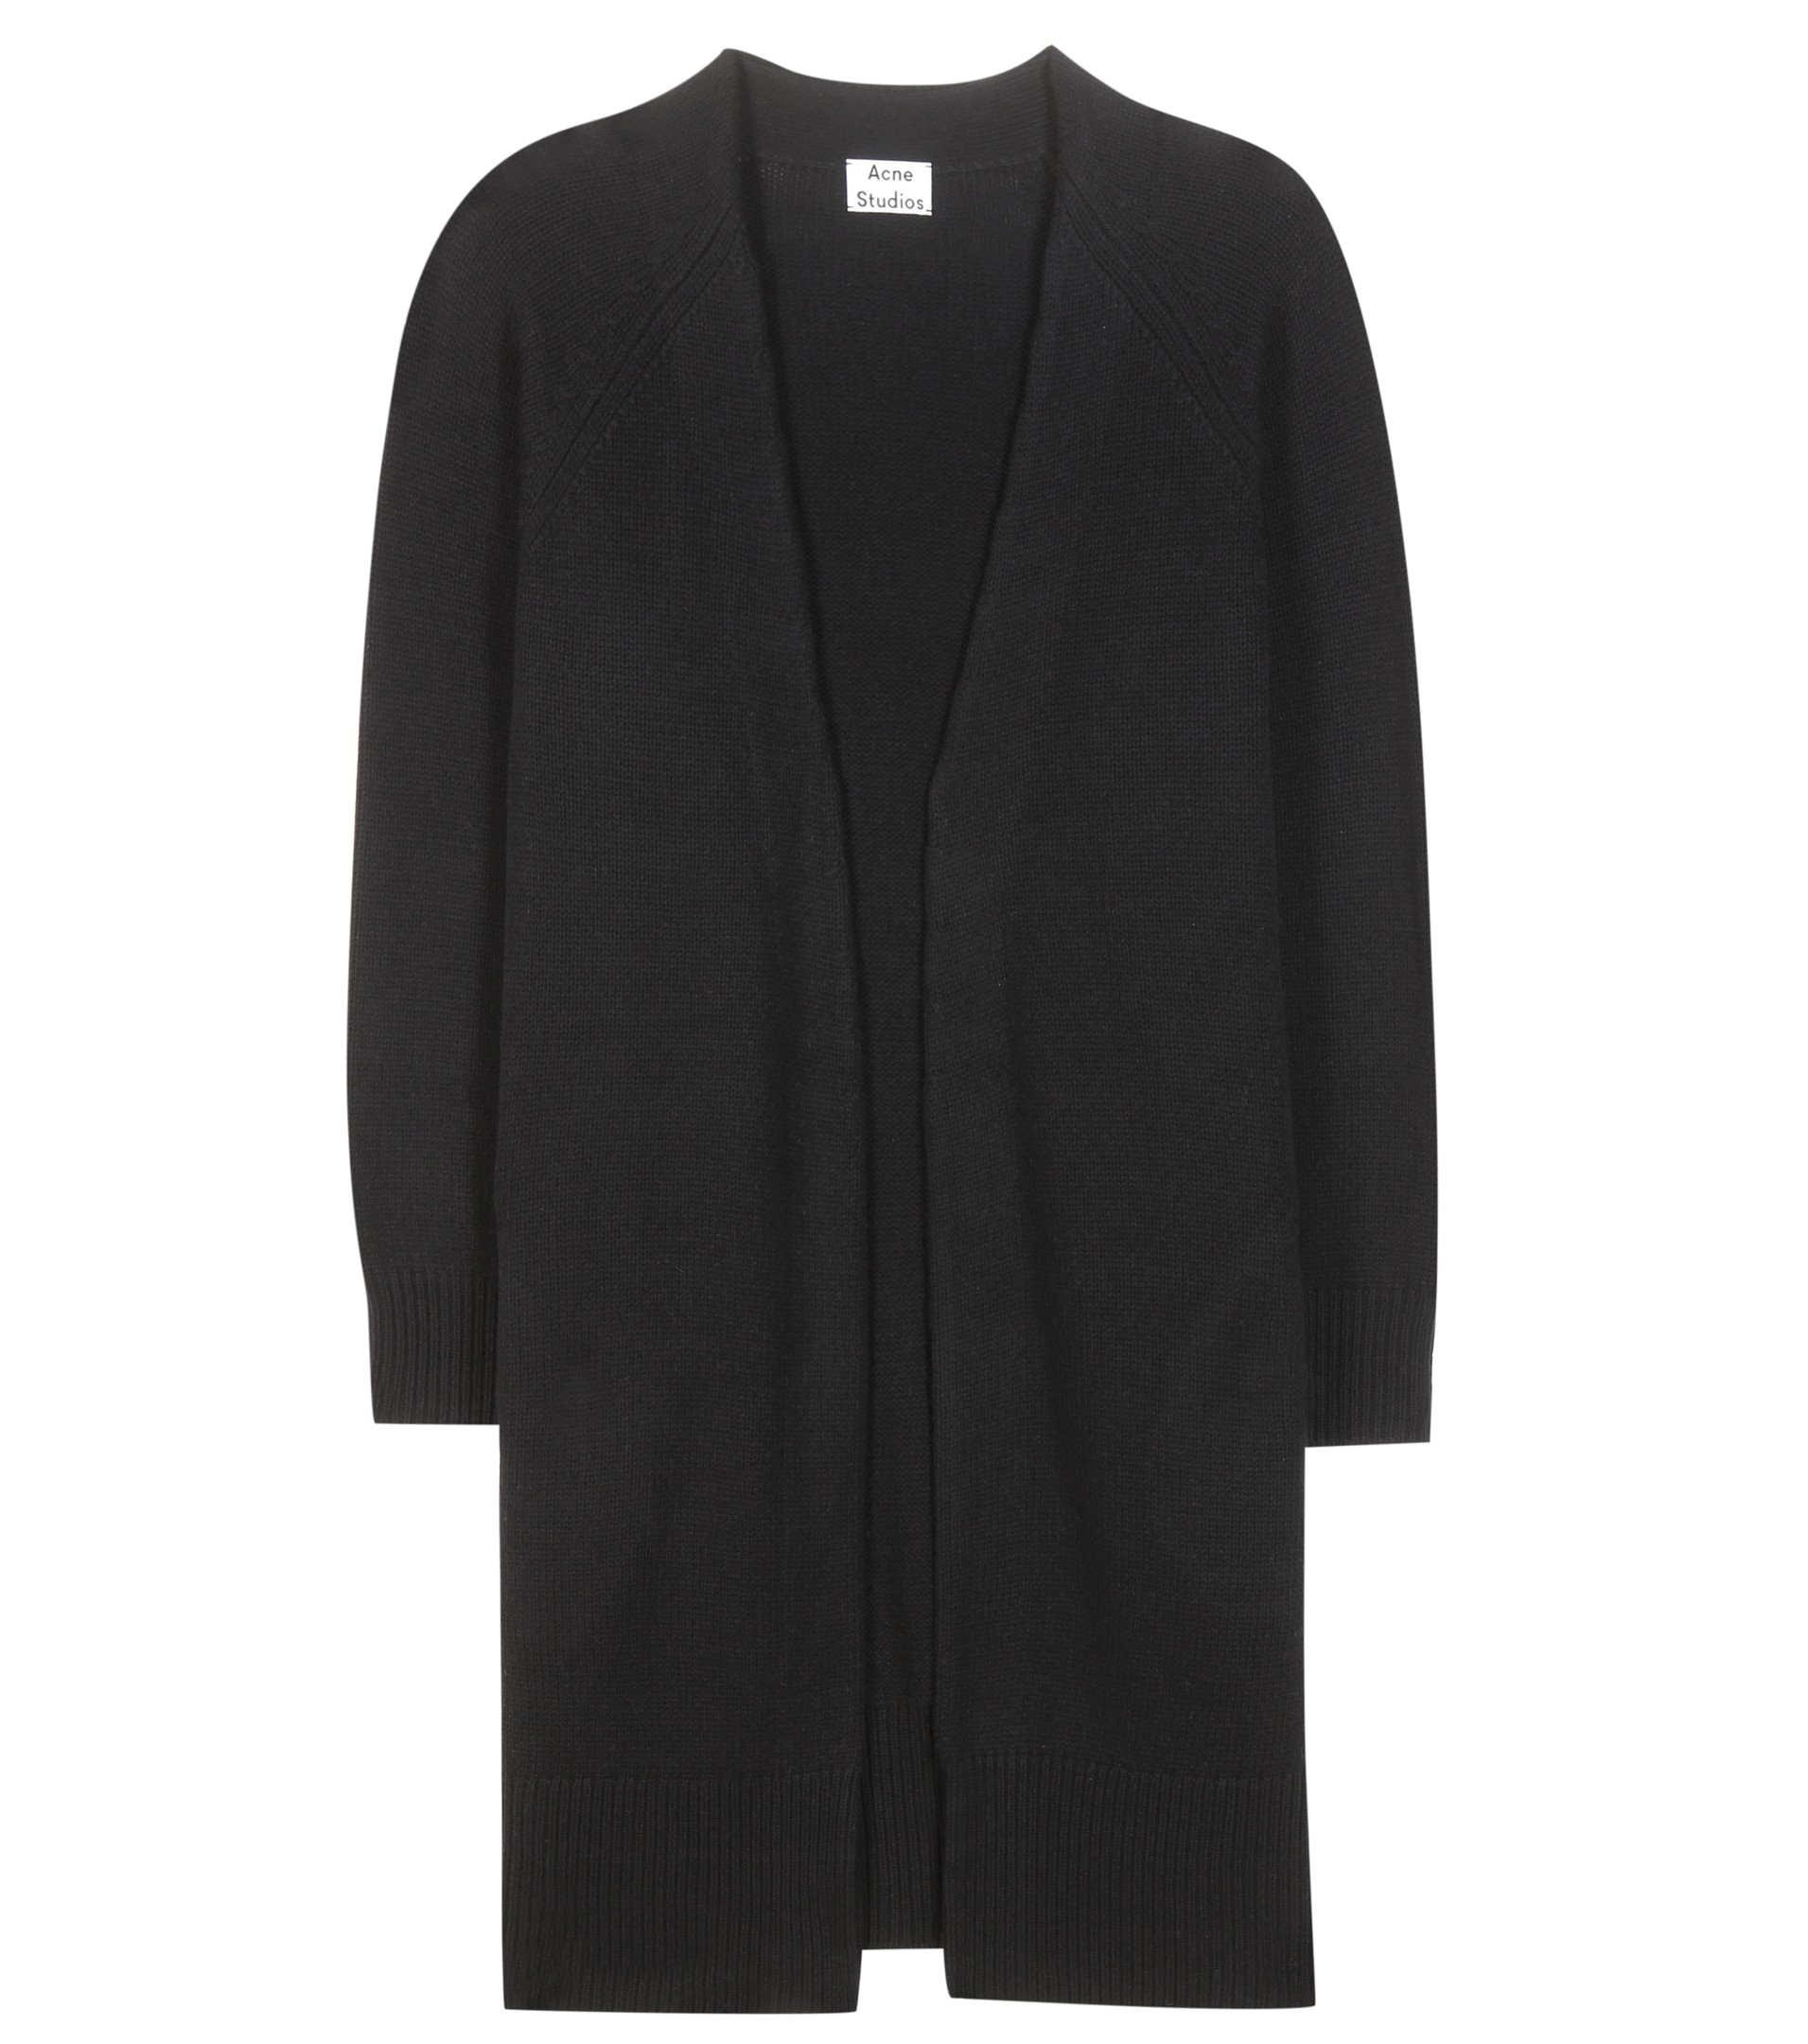 Acne studios Sonya Wool And Cashmere Open Cardigan in Black | Lyst